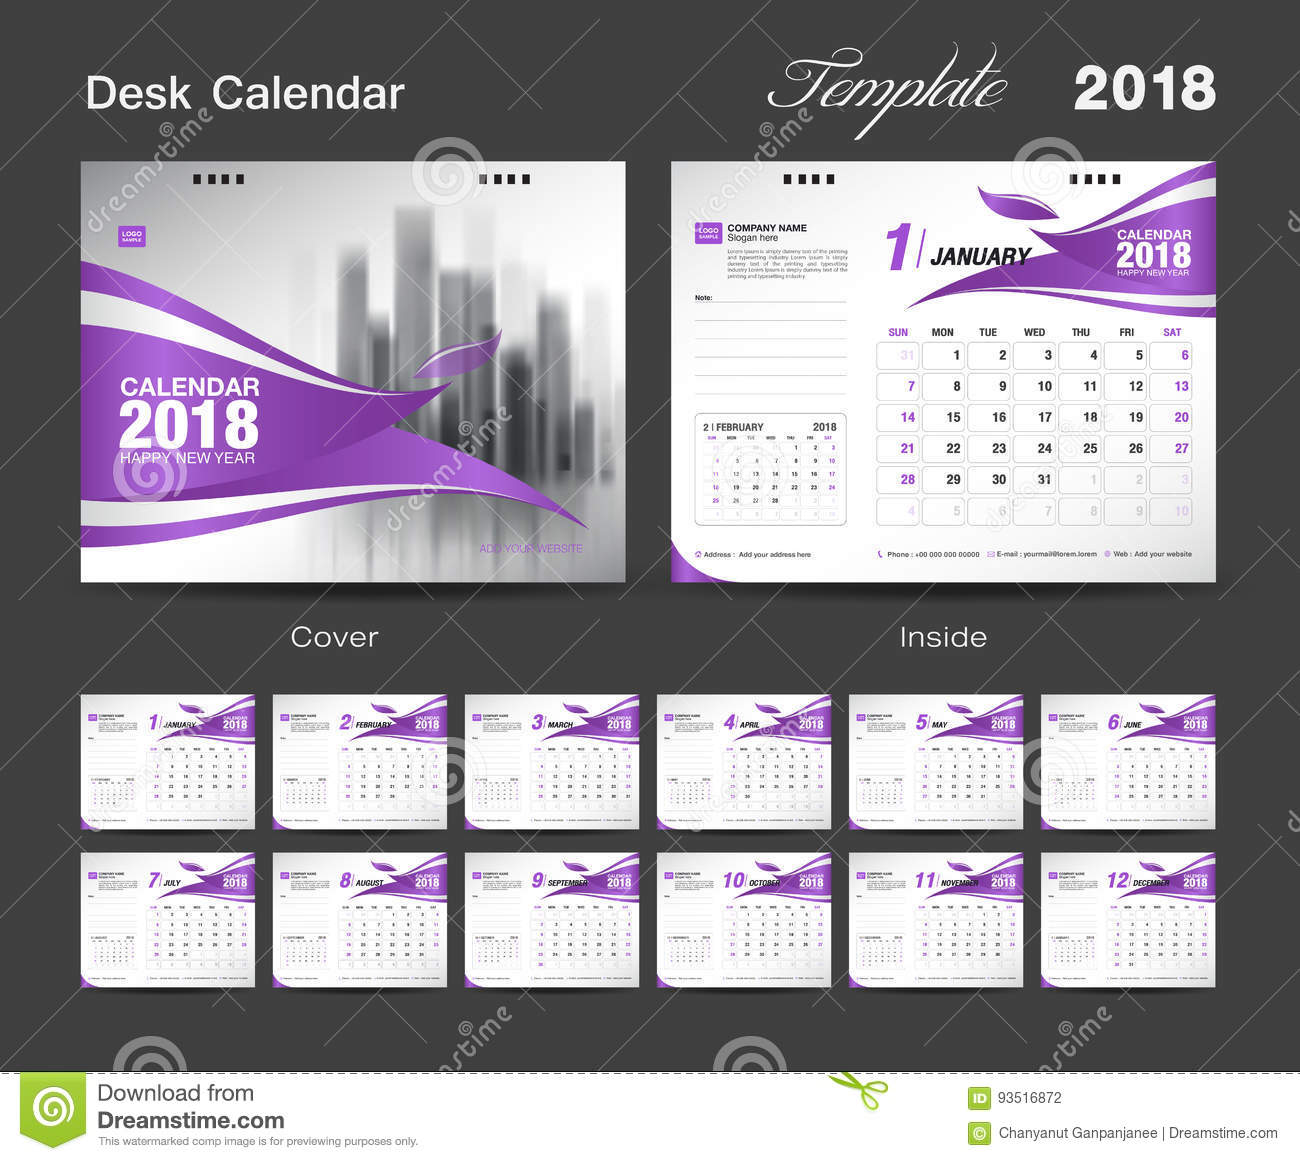 Corporate Calendar 2018 : Desk calendar graphicriver features week starts